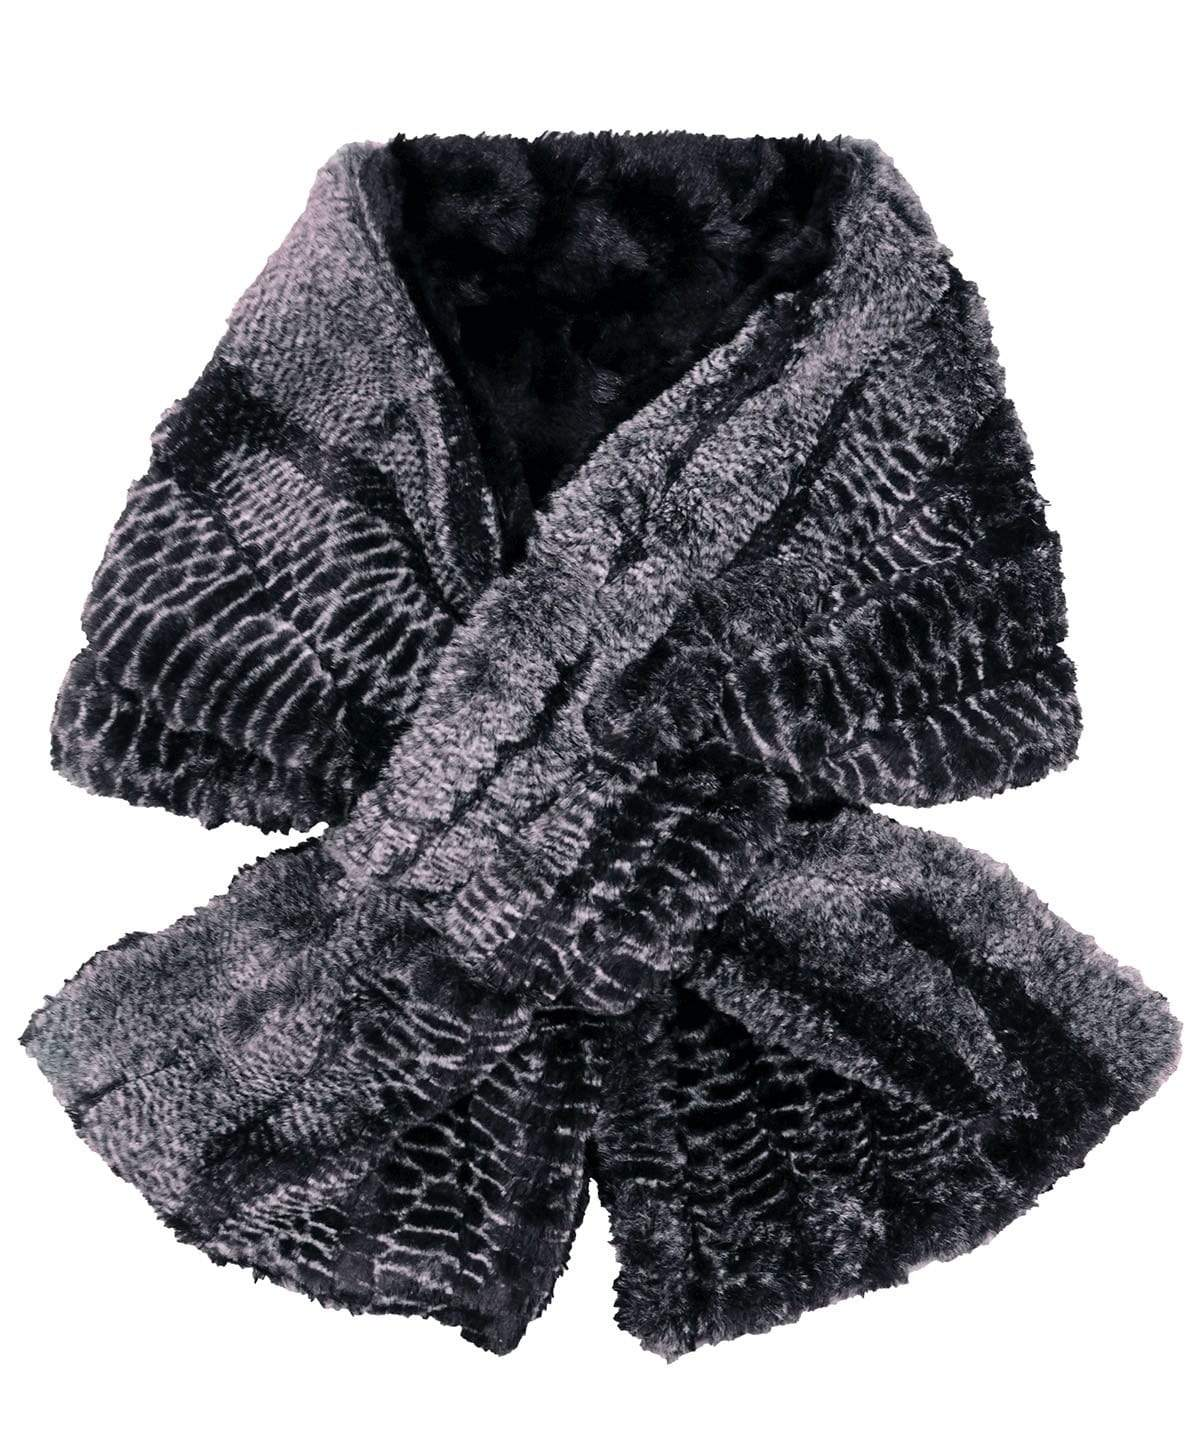 Pull-Thru Scarf - Luxury Faux Fur in Rattlesnake Ridge (SOLD OUT)